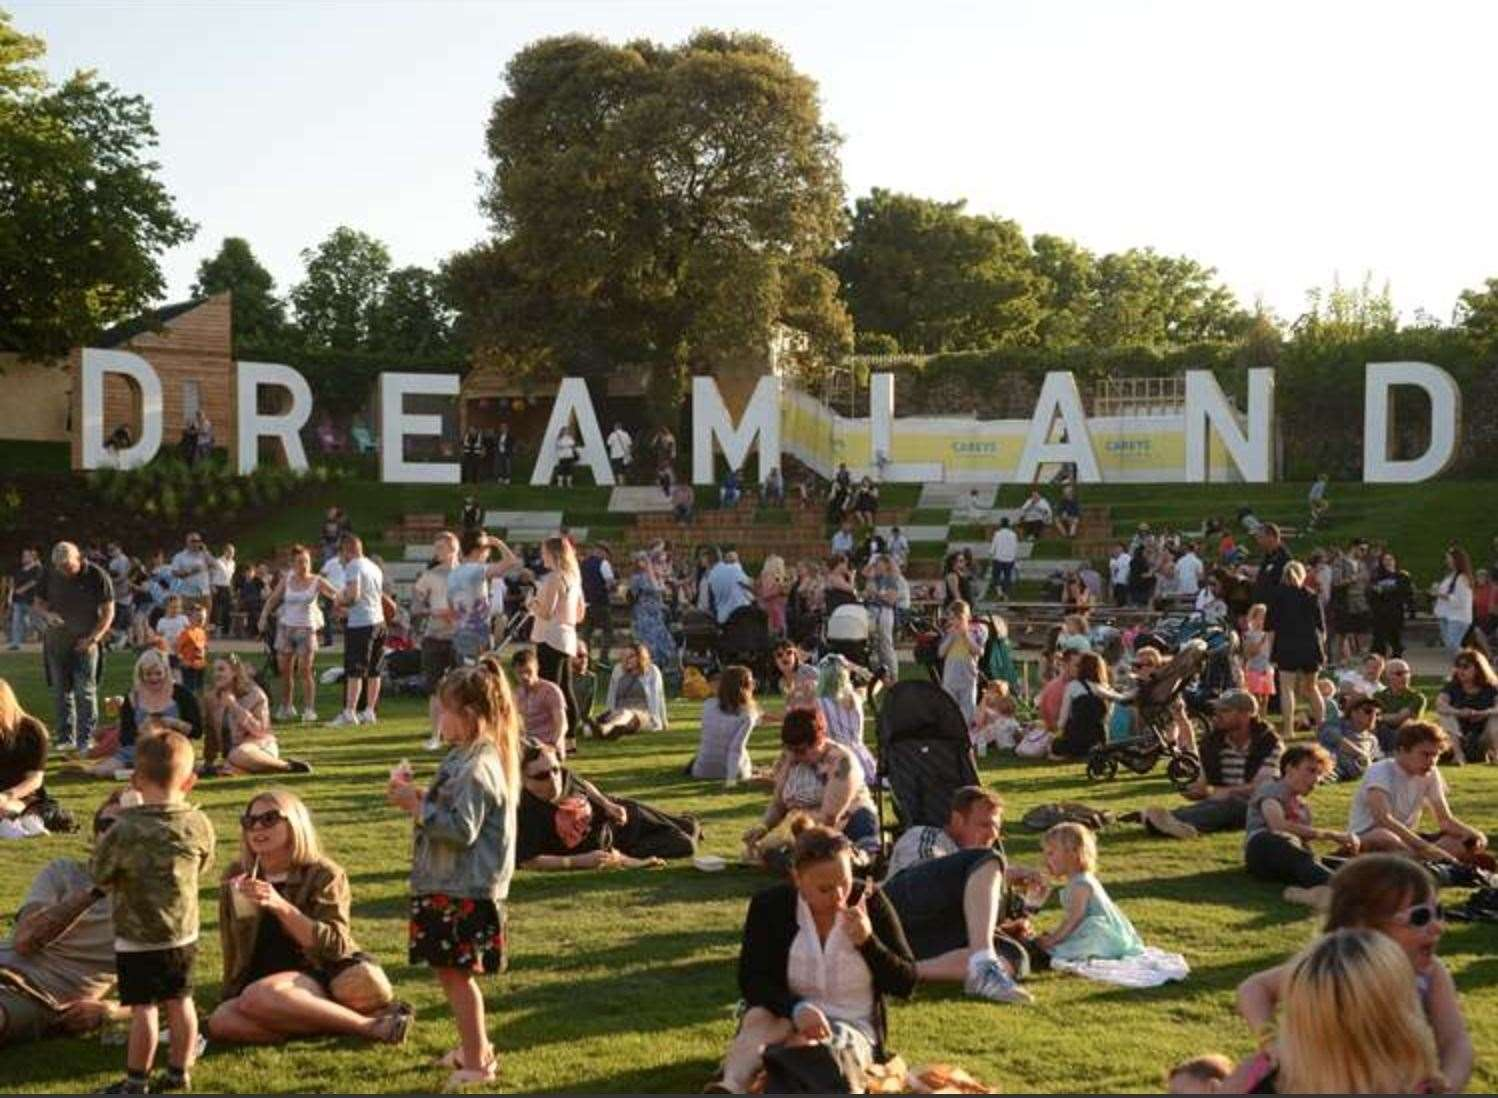 Summer events are helping to secure Dreamland's future.